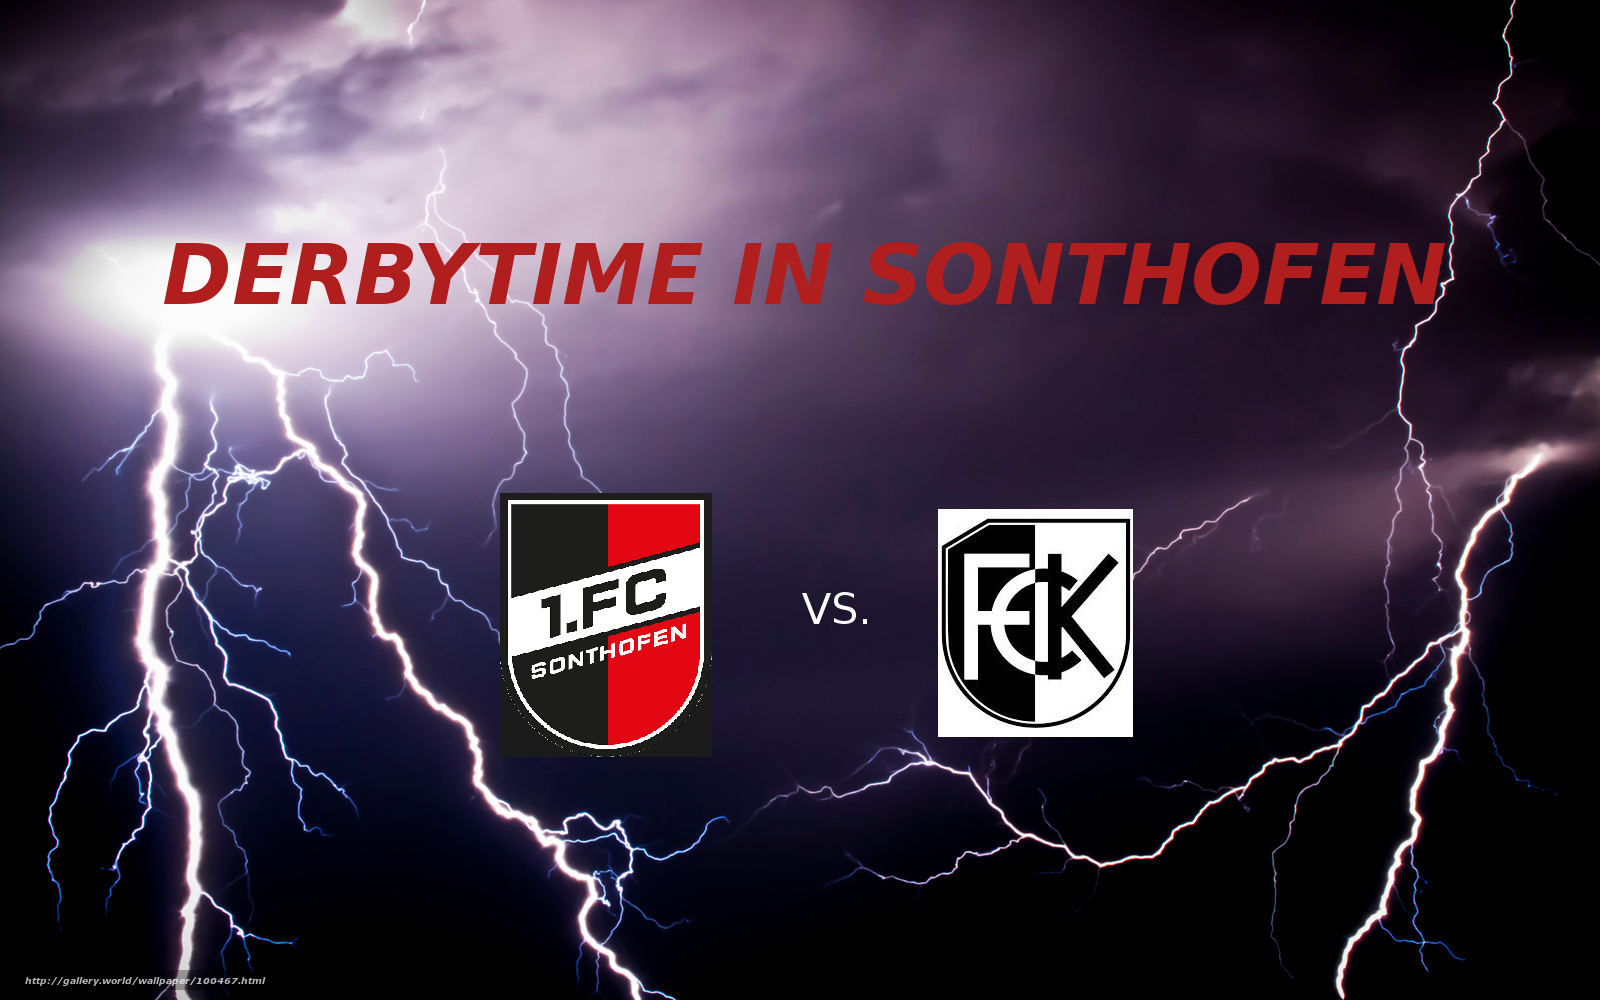 DERBYTIME IN SONTHOFEN